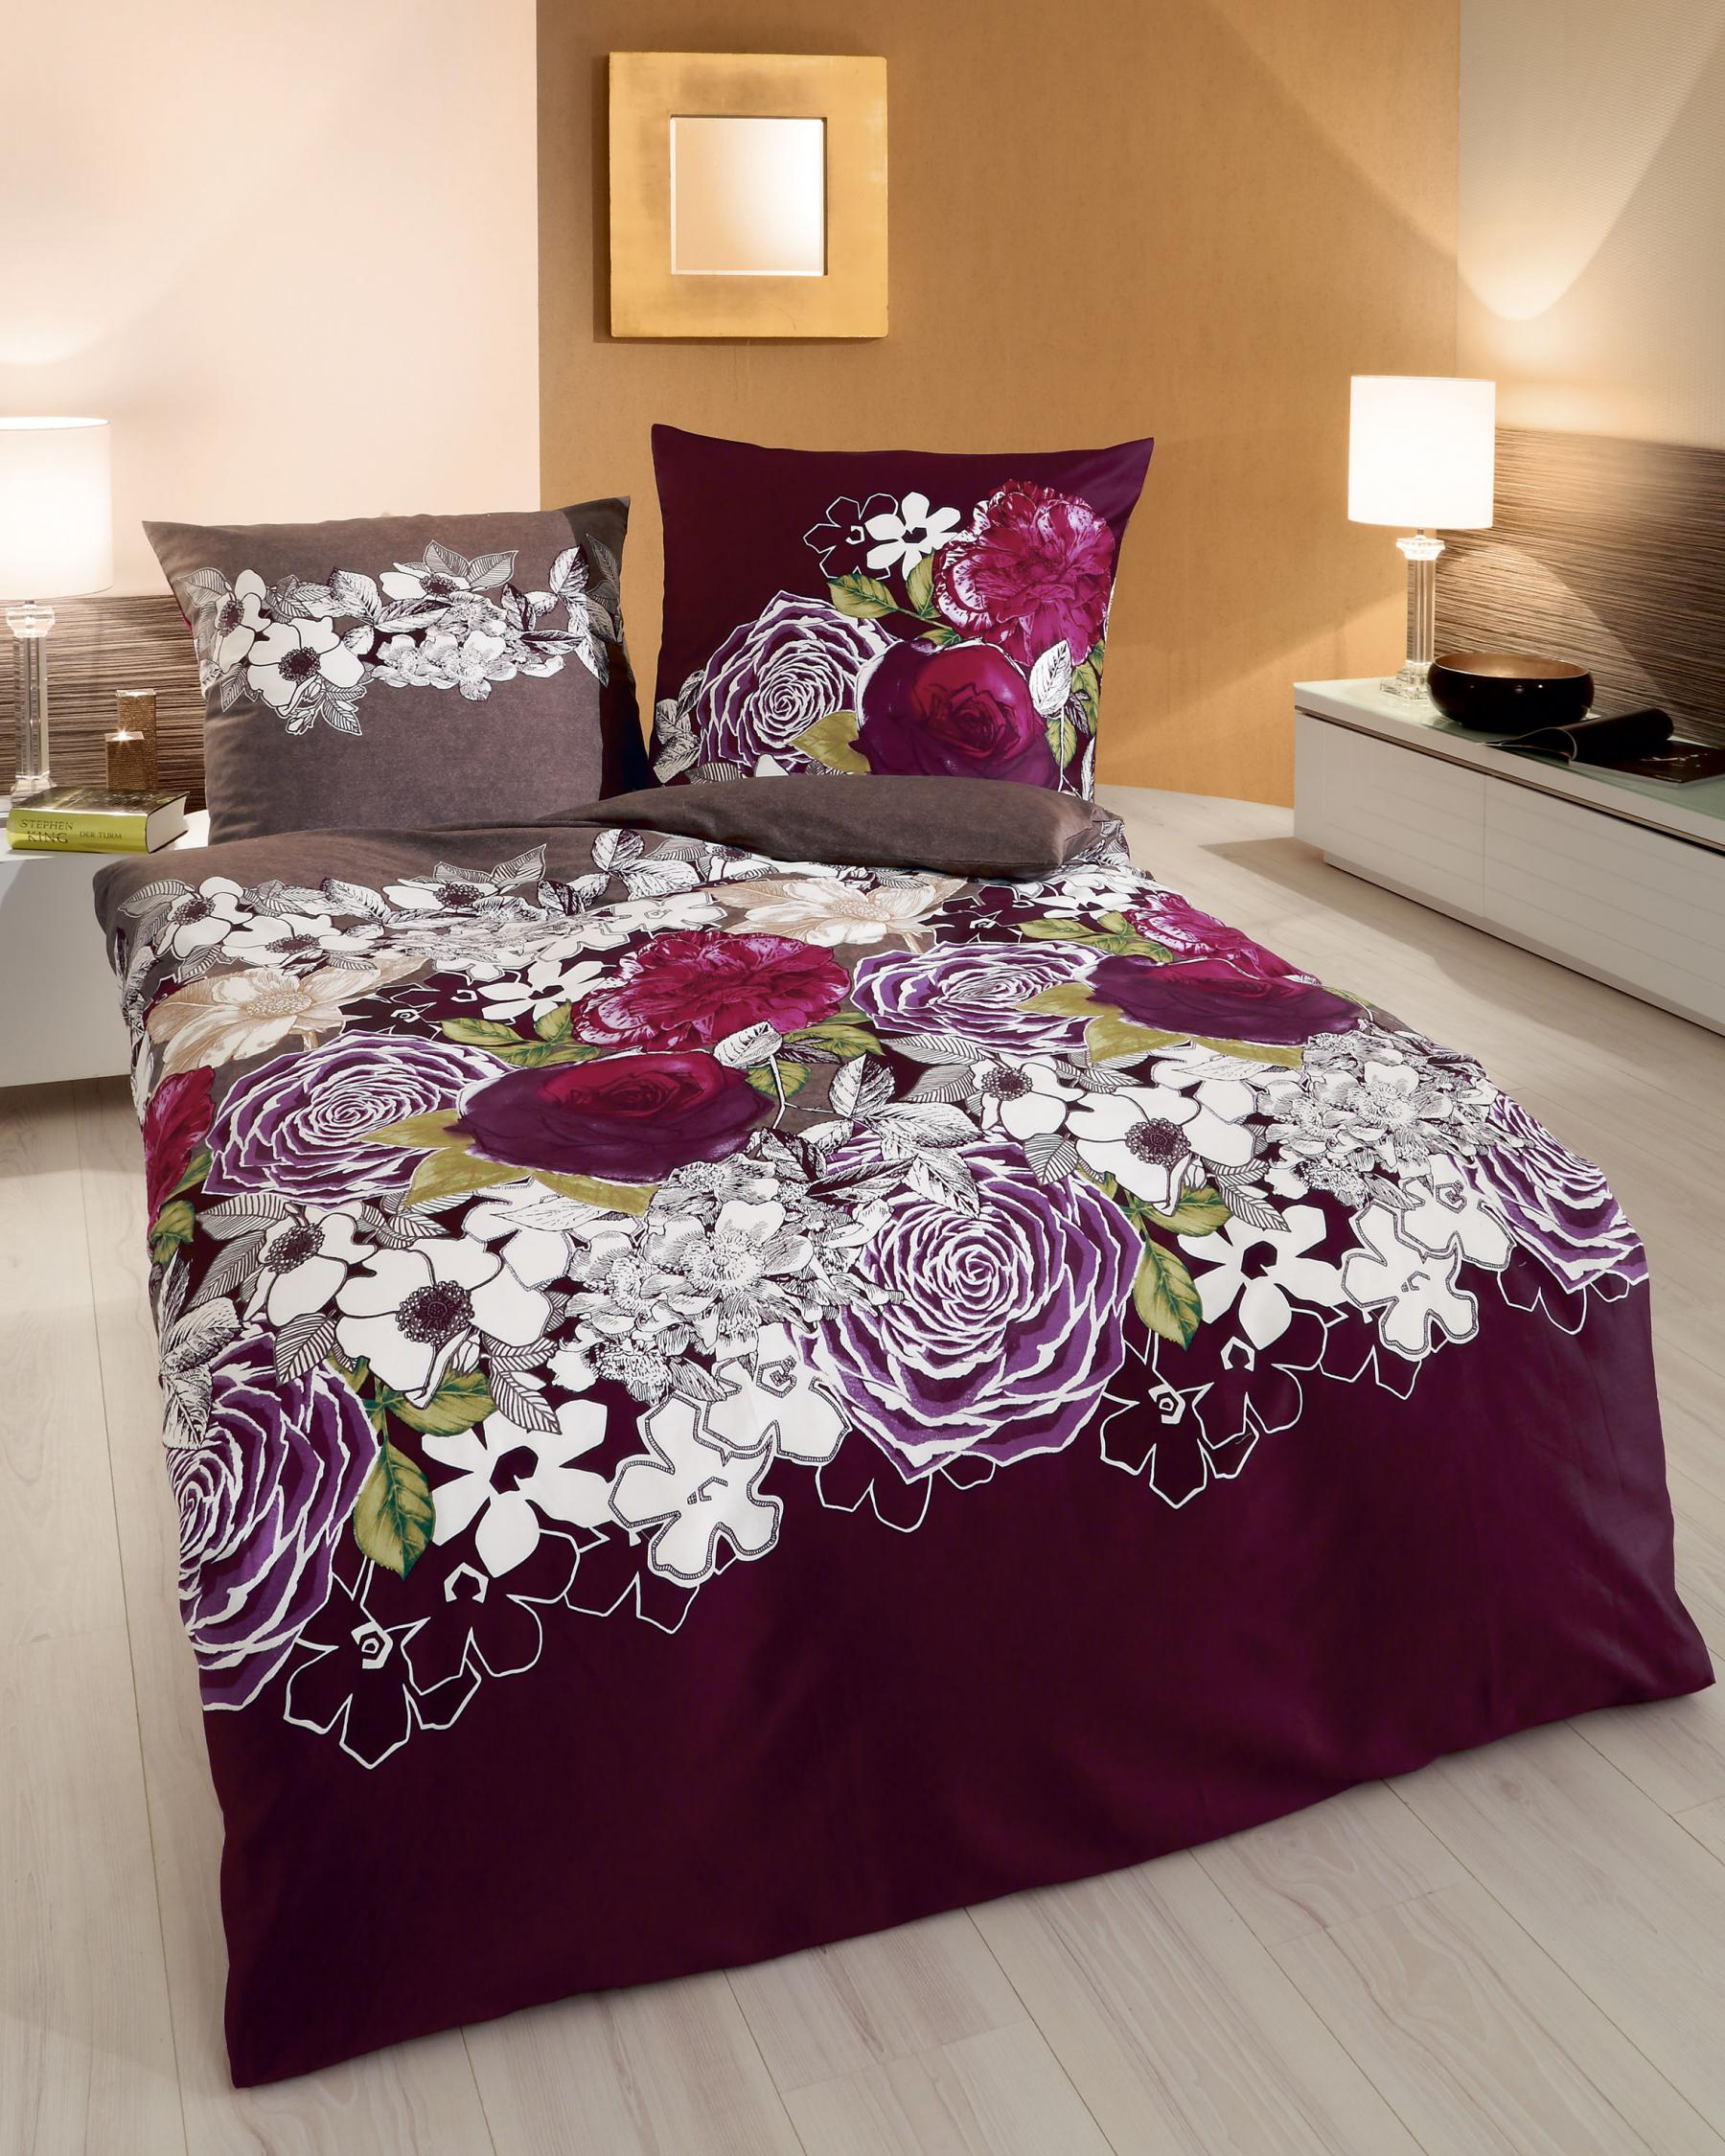 bettw sche 155x220 cm mako satin blumenmotiv 419 von. Black Bedroom Furniture Sets. Home Design Ideas